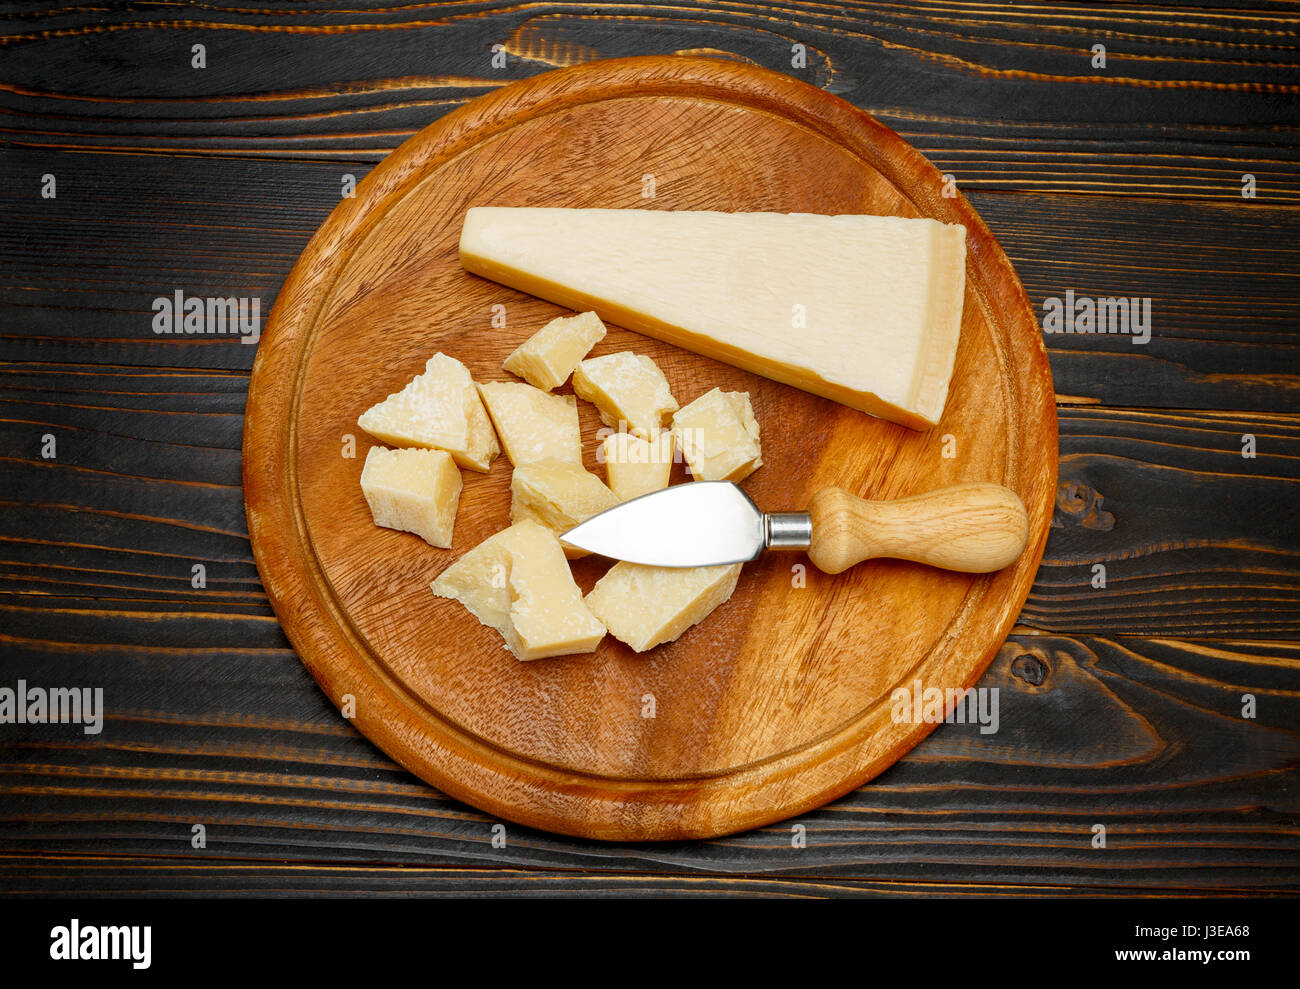 parmesan cheese on wooden background - Stock Image